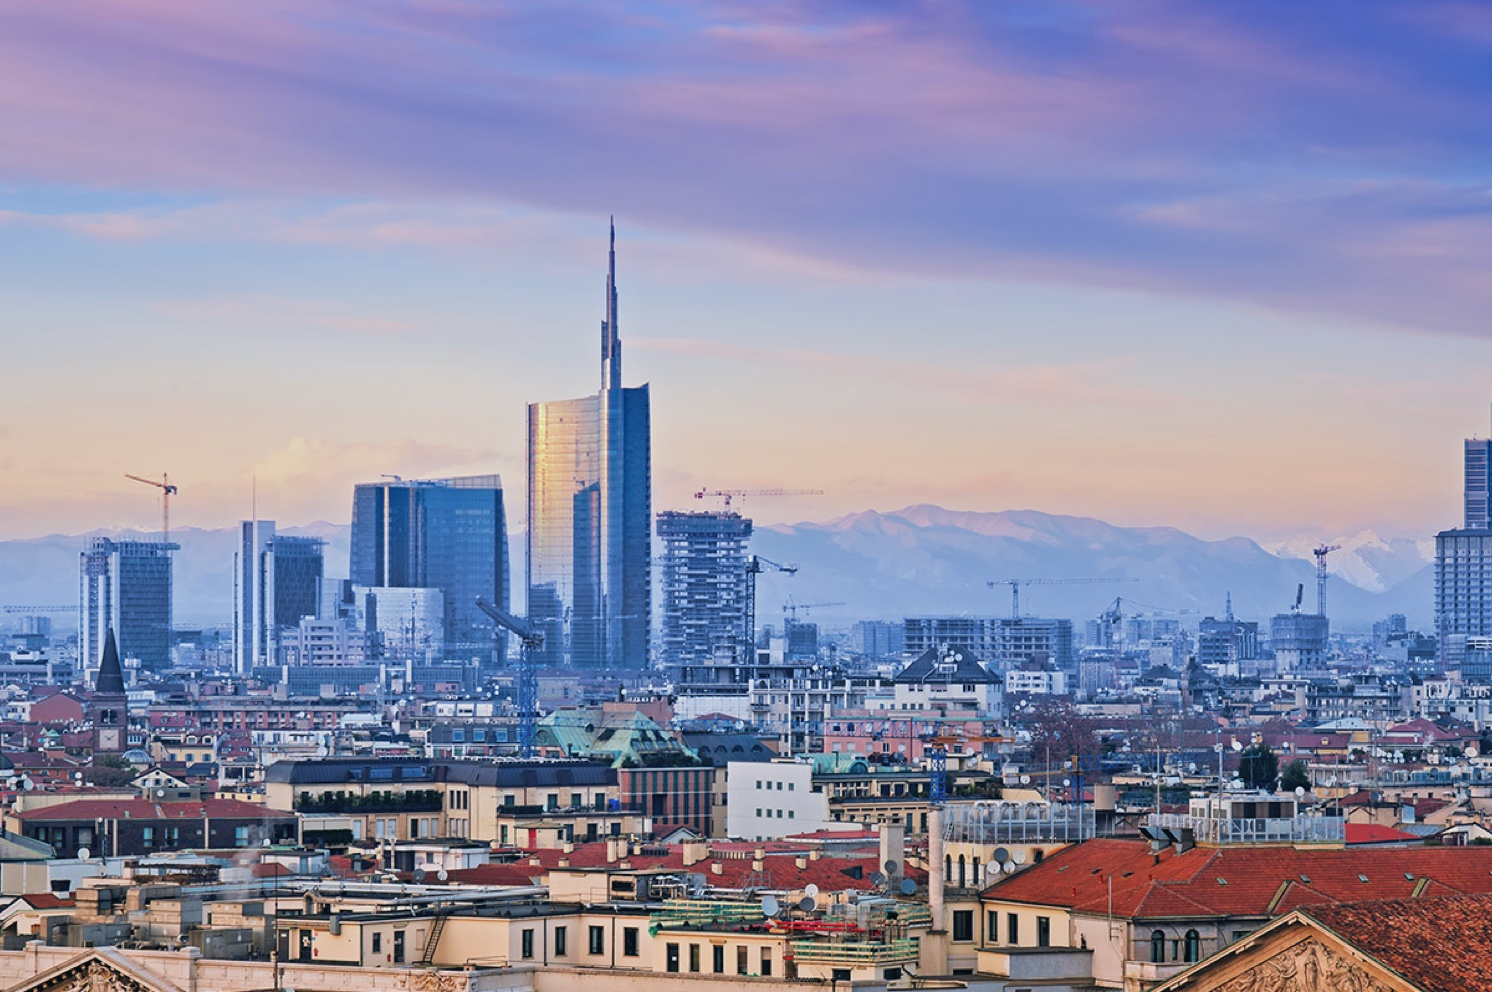 Milano overview